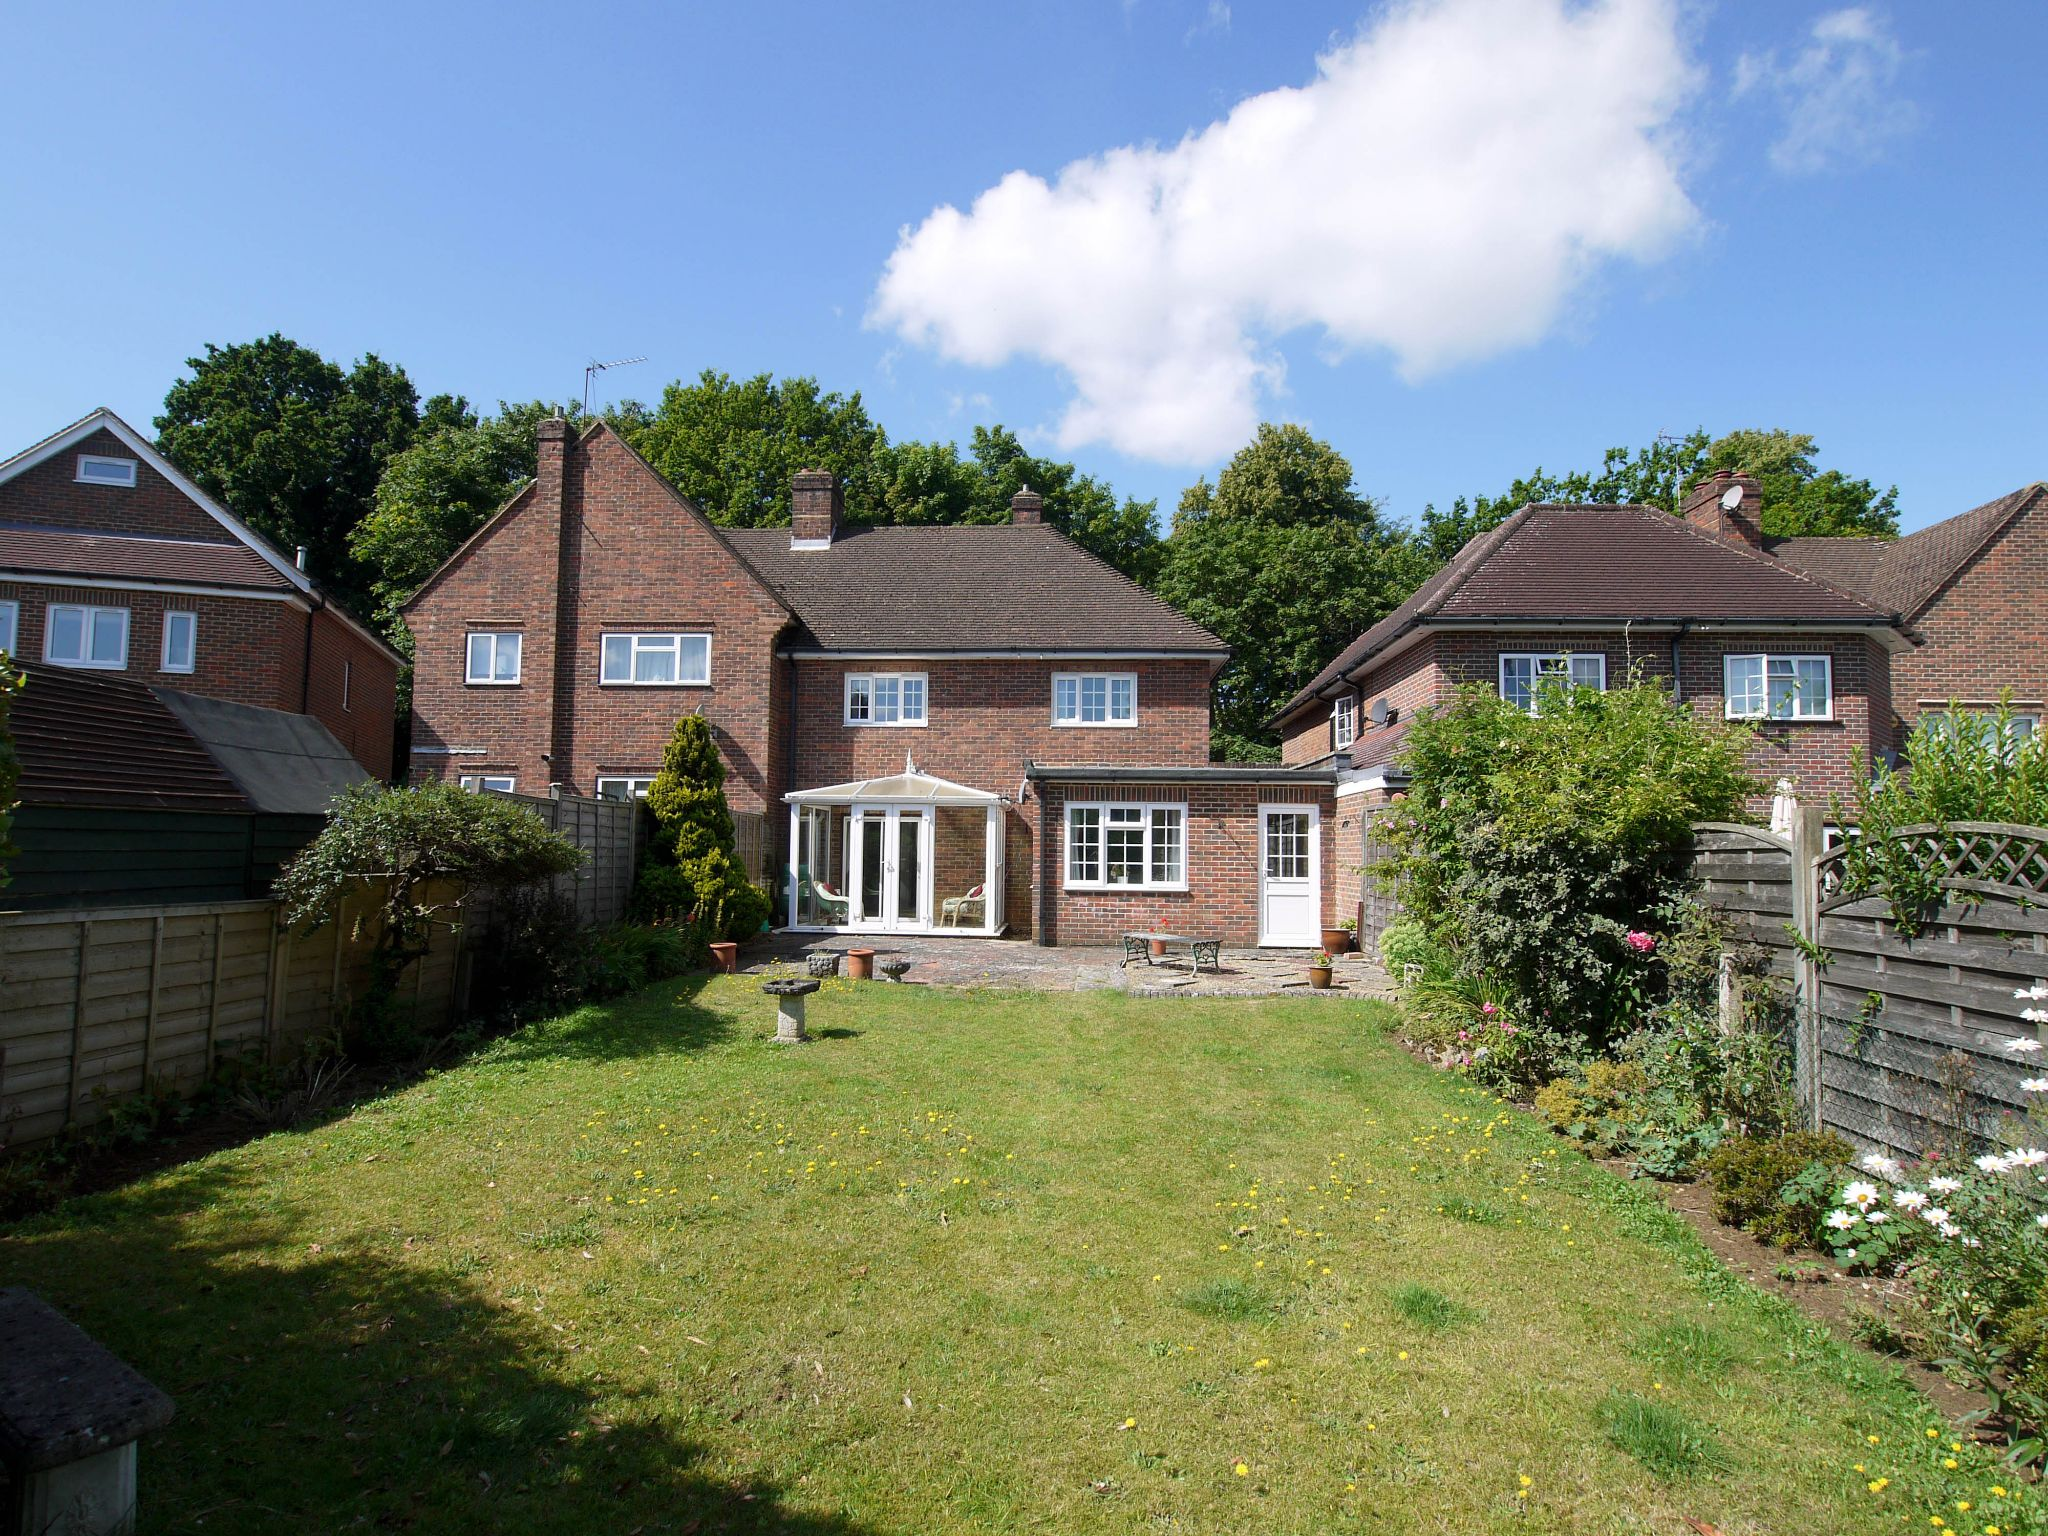 3 bedroom semi-detached house Sold in Sevenoaks - Photograph 14